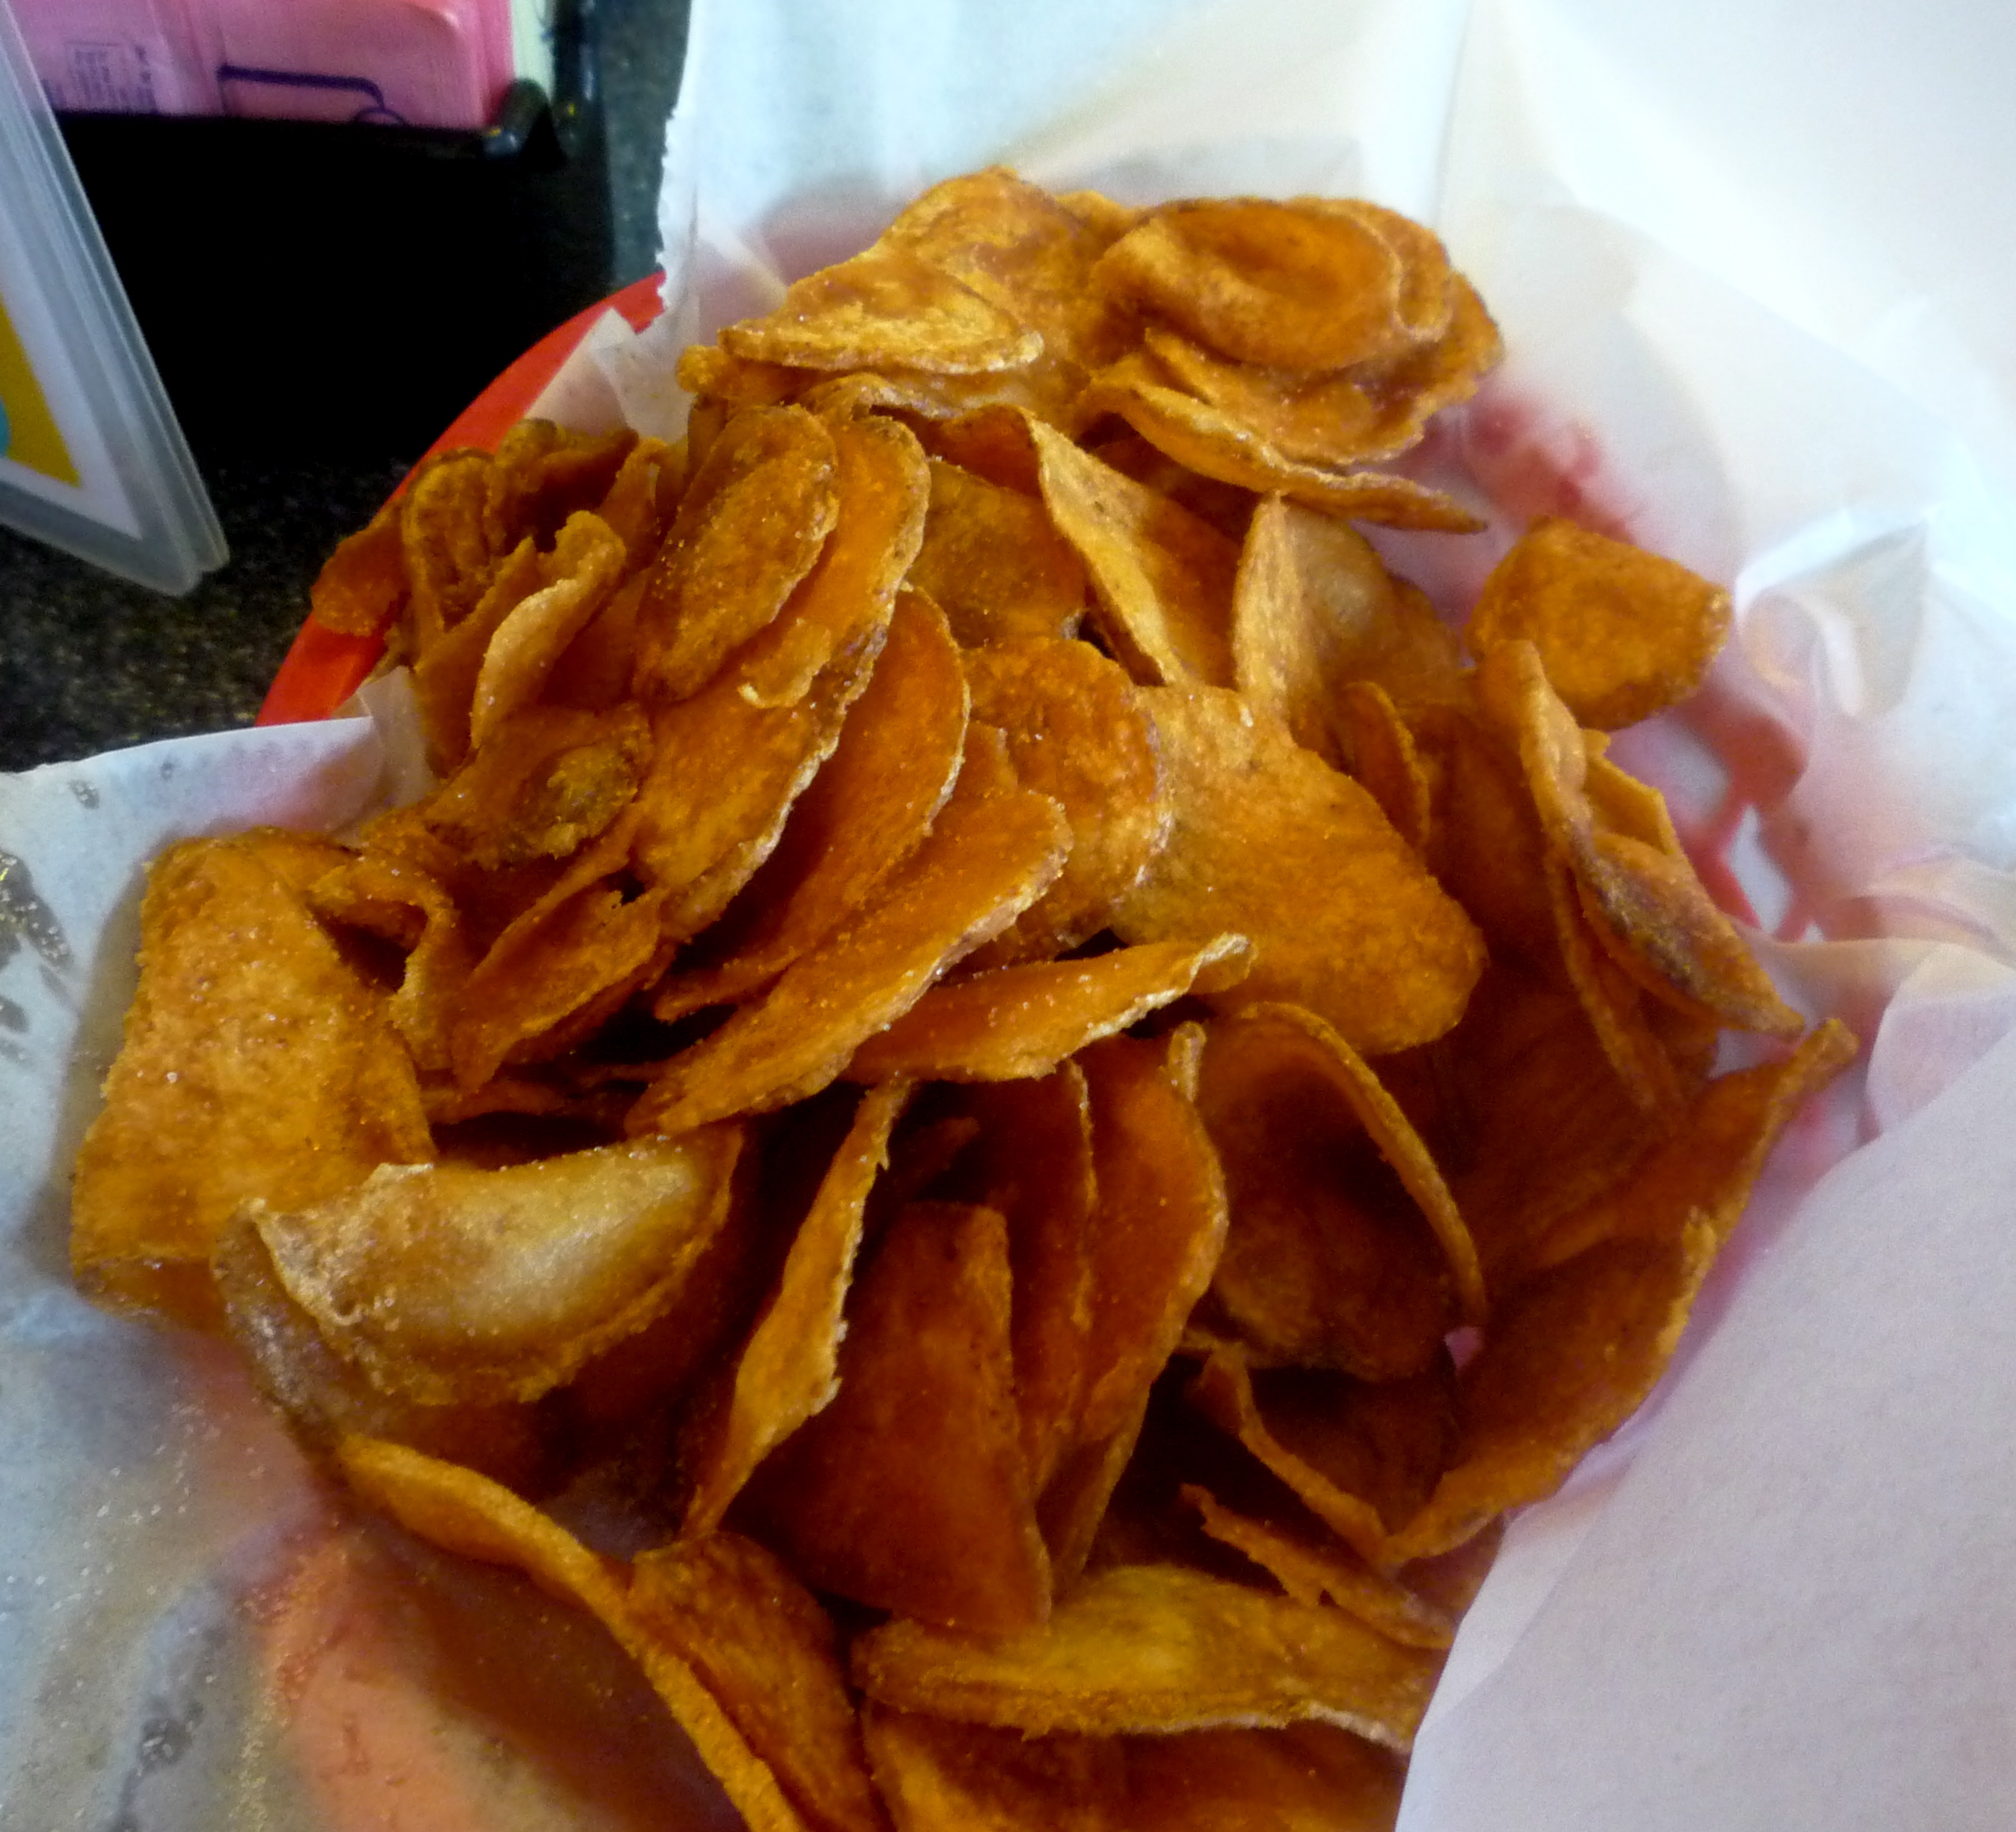 Savoring Handmade Fried Potato Chips at New Hampshire's Red Arrow Diner